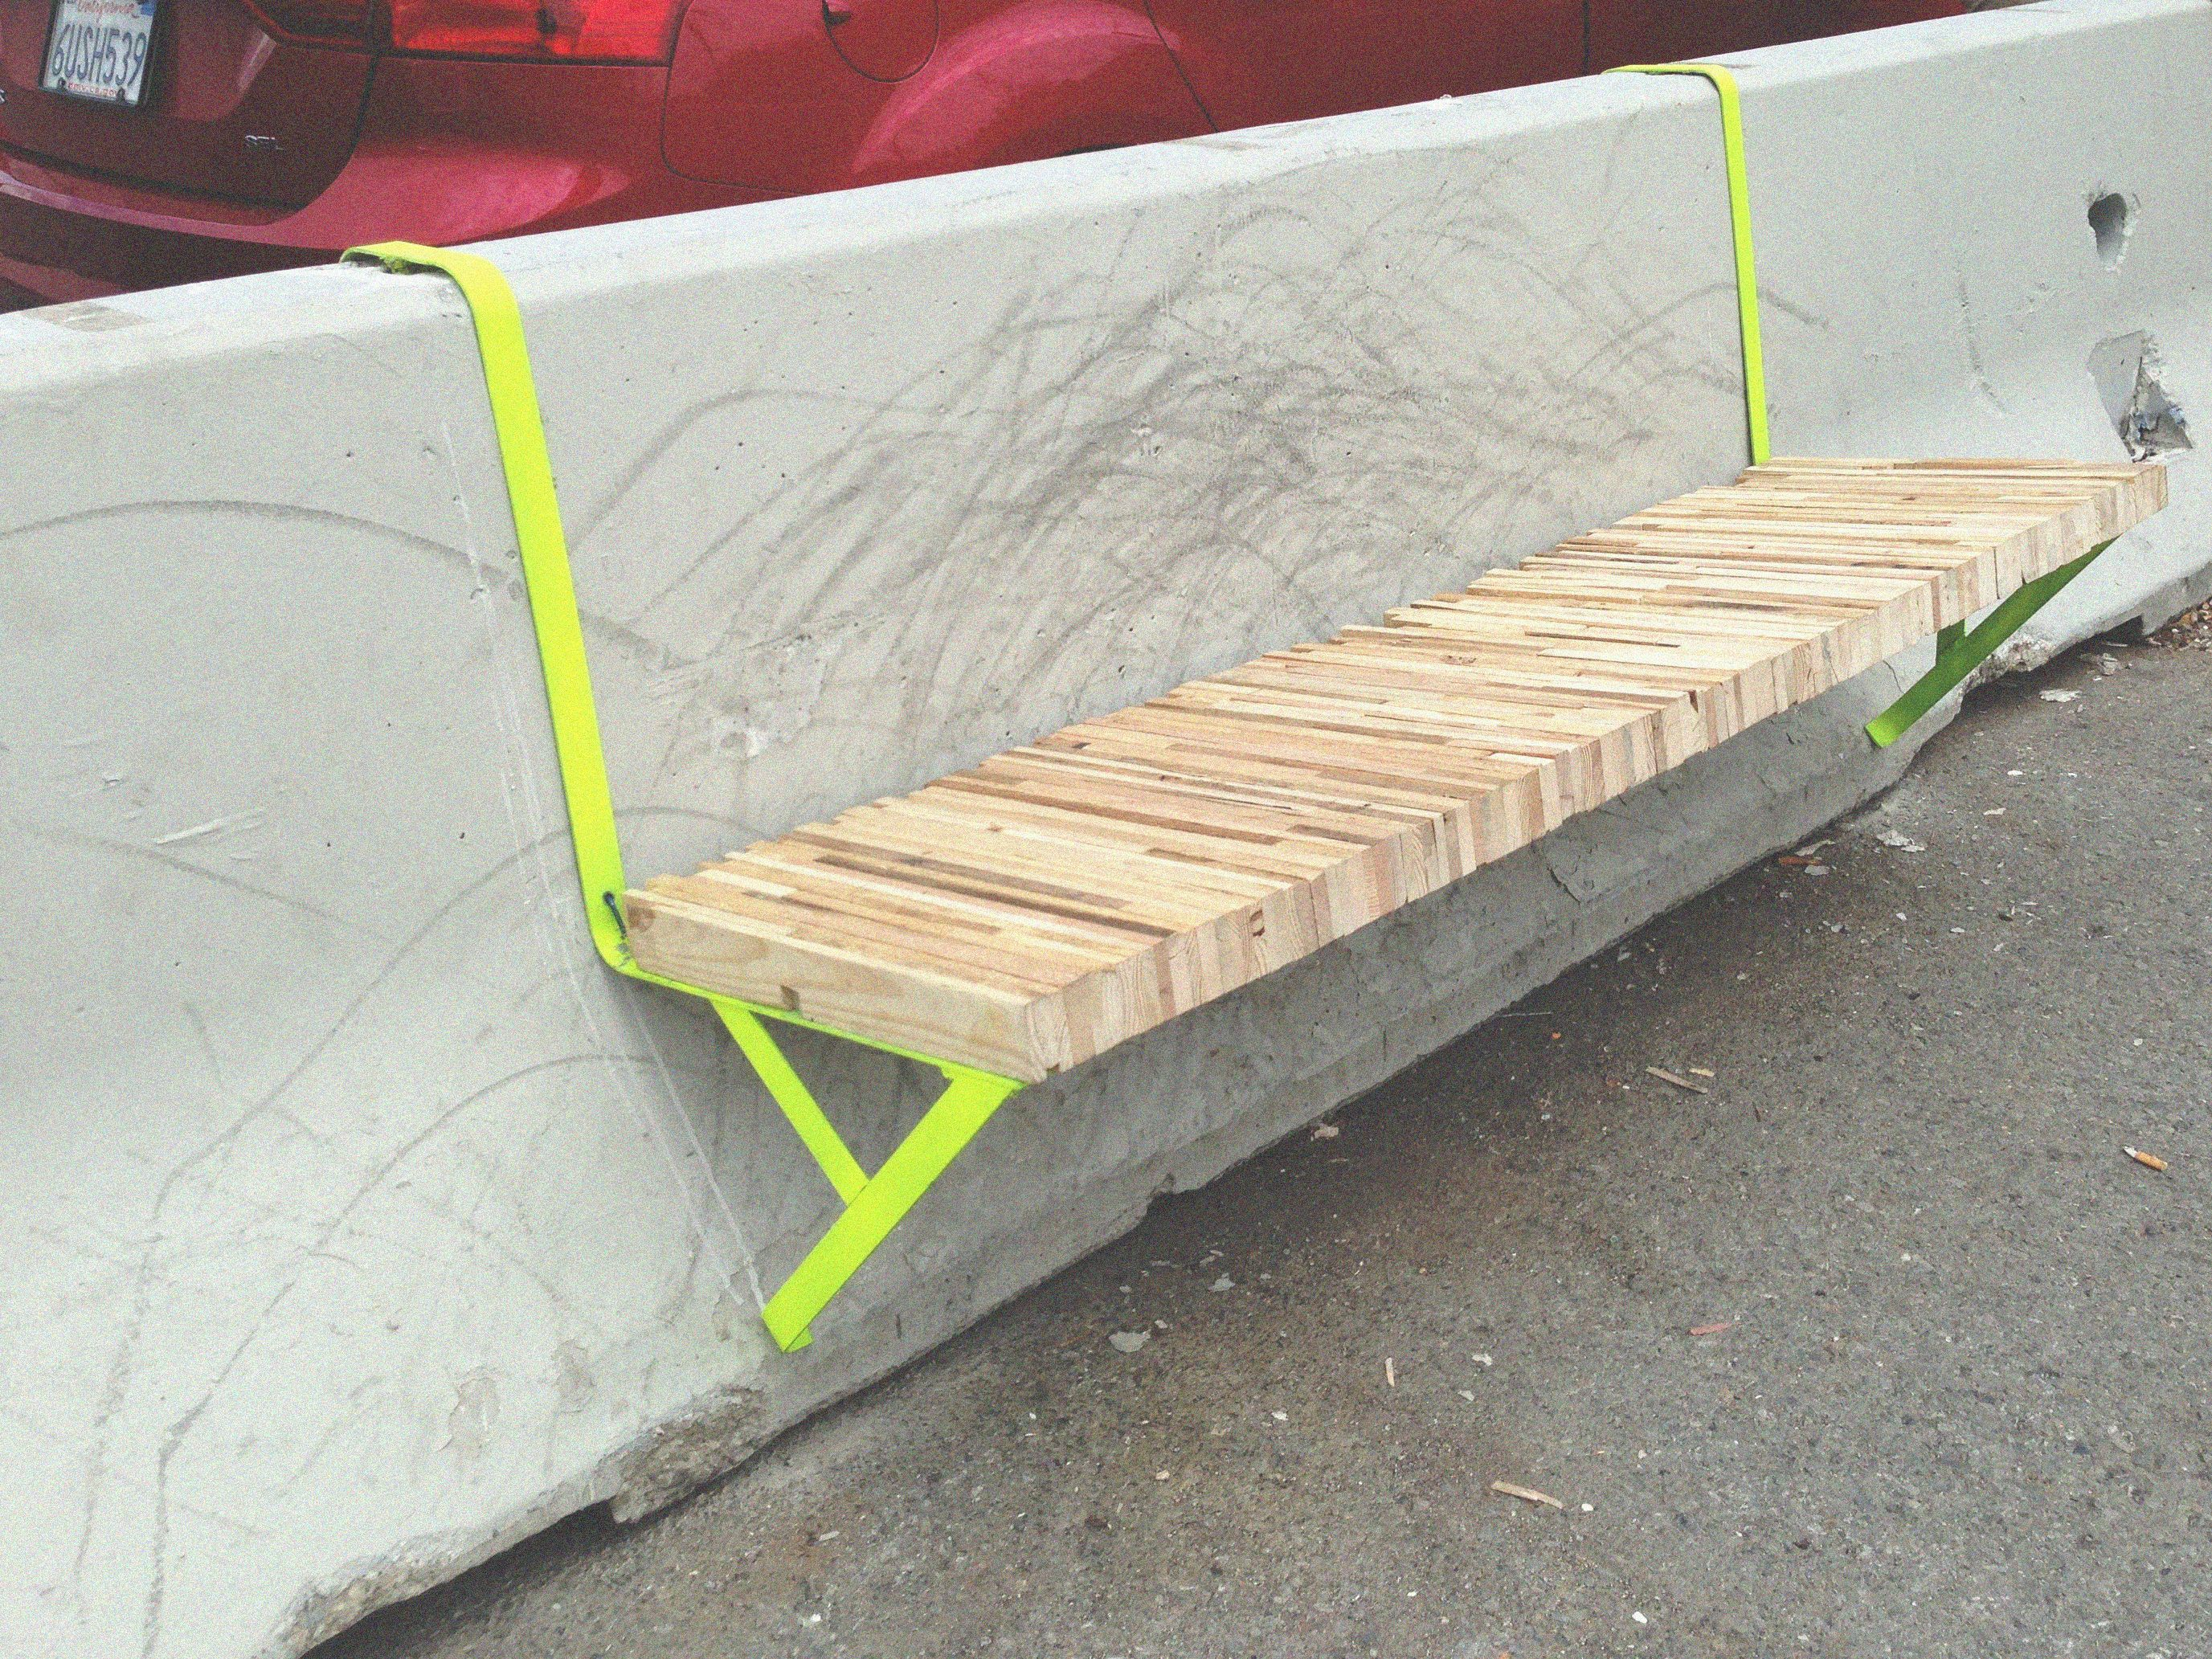 The Jersey Bench Is A Modular Guerrilla Urban Furniture Designed To Break The Common Aesthetics And Usage Of The Generic Concrete Barriers So Calle Blog Disegni